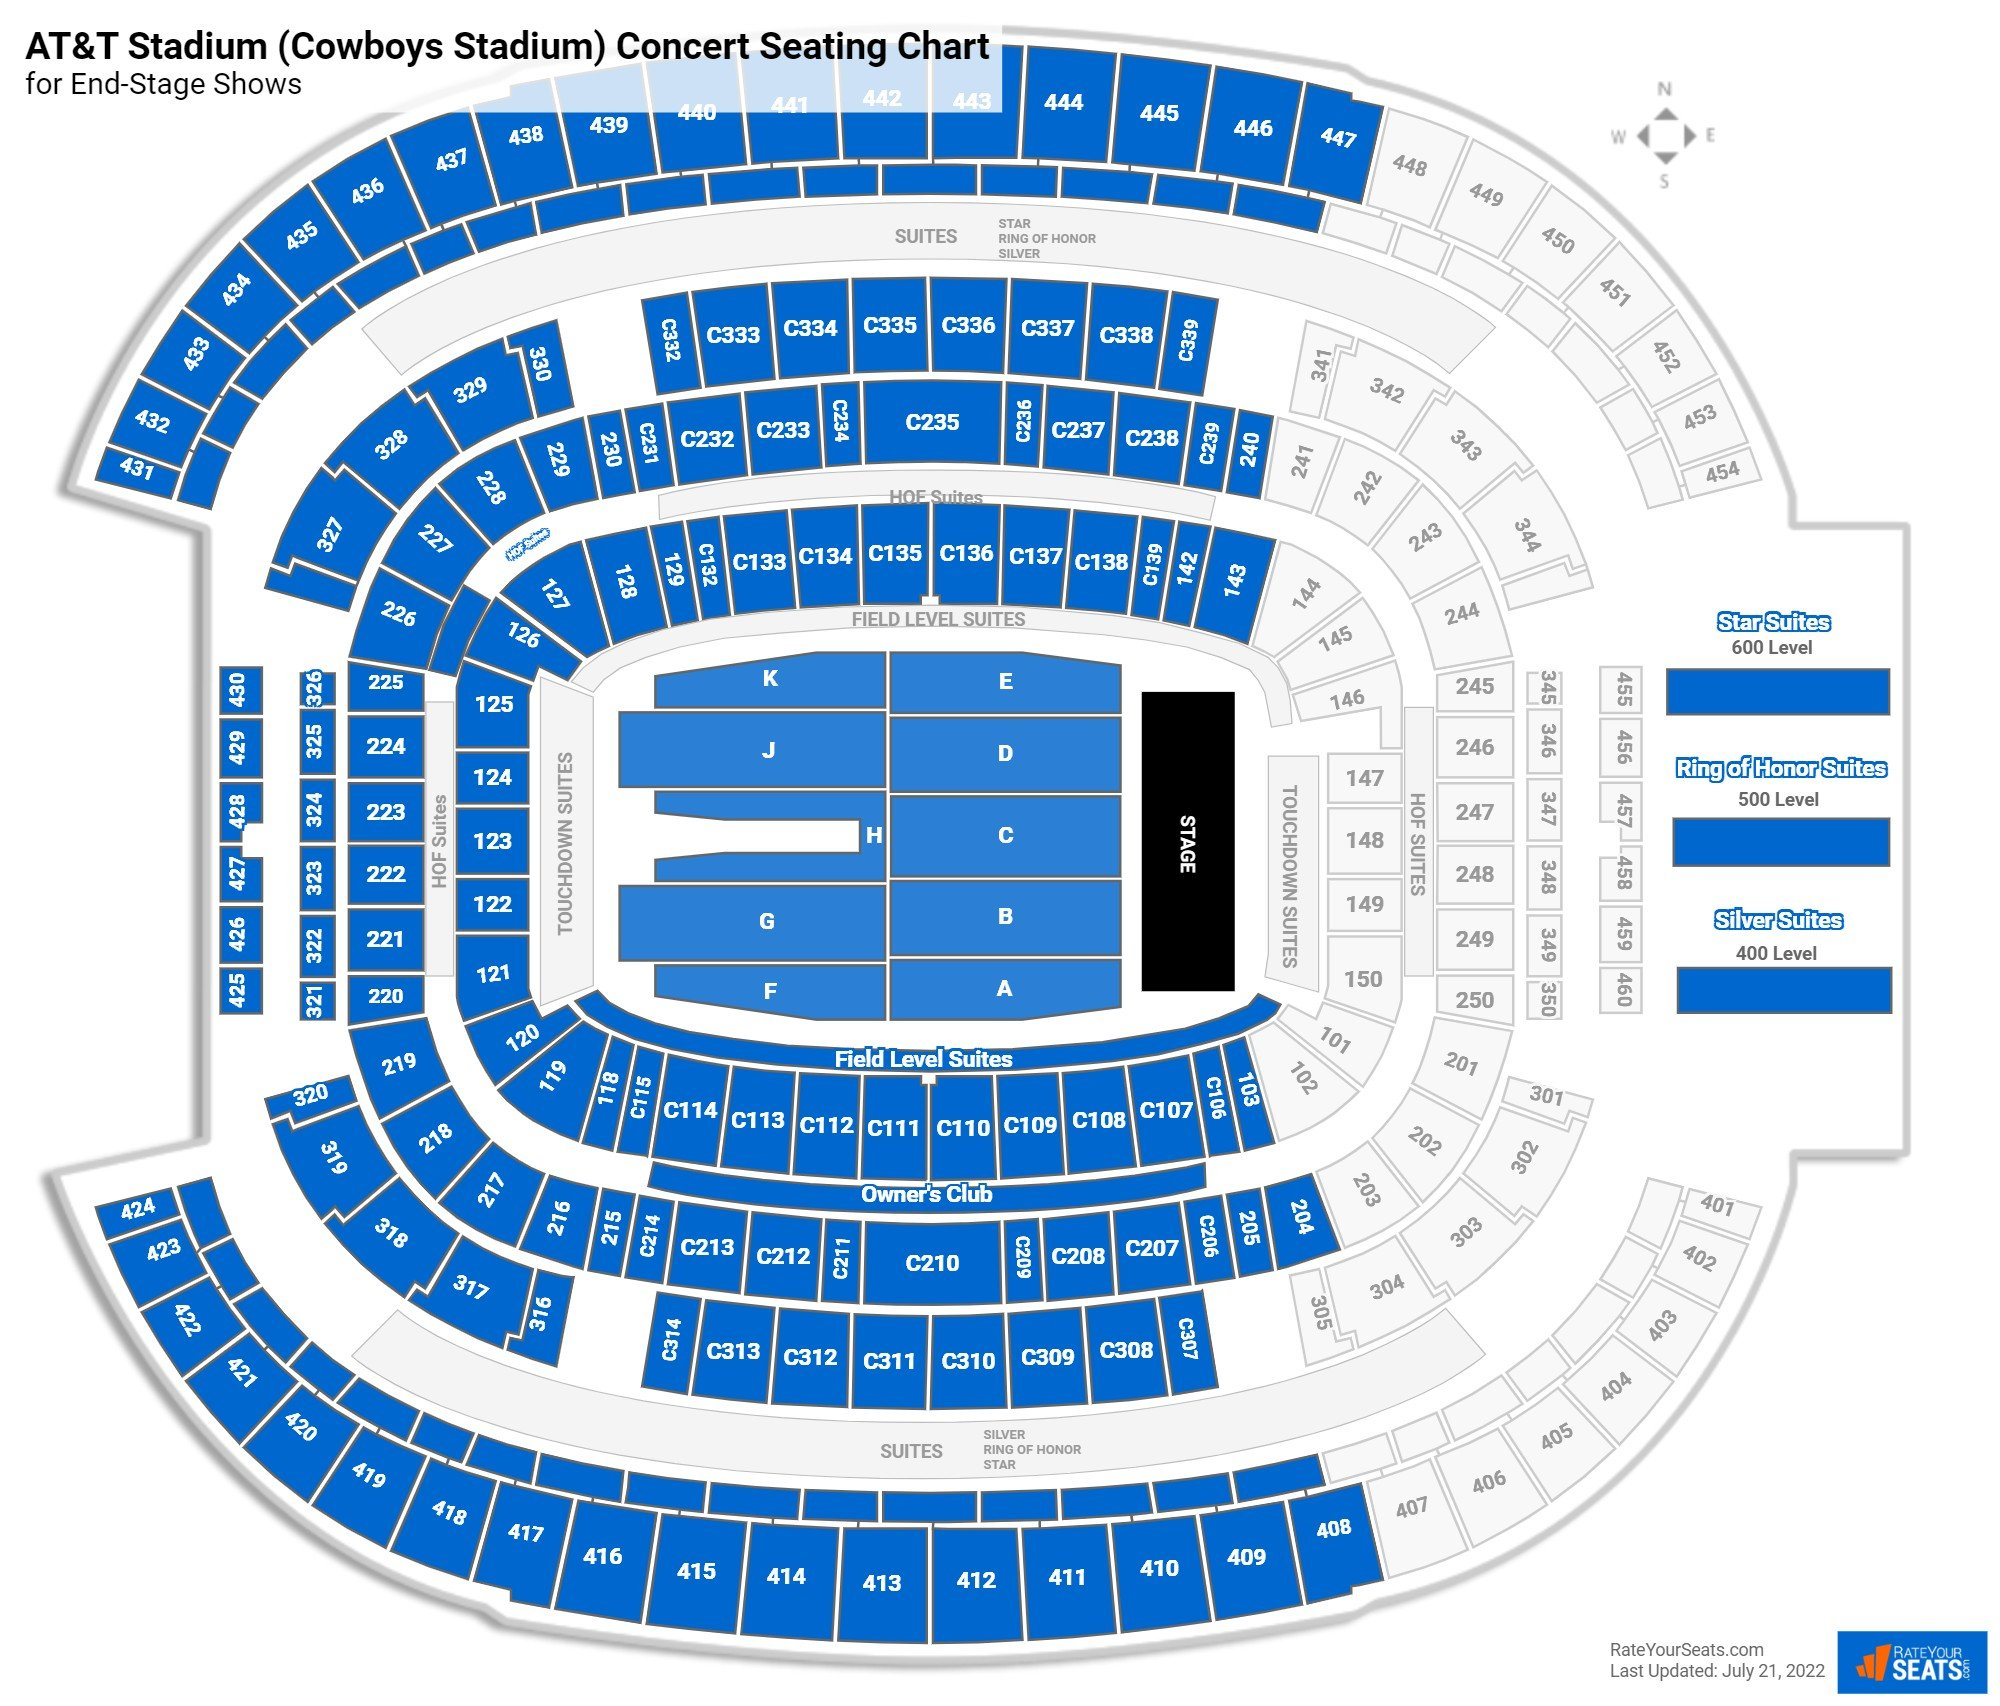 AT&T Stadium (Cowboys Stadium) Seating Chart for Concerts